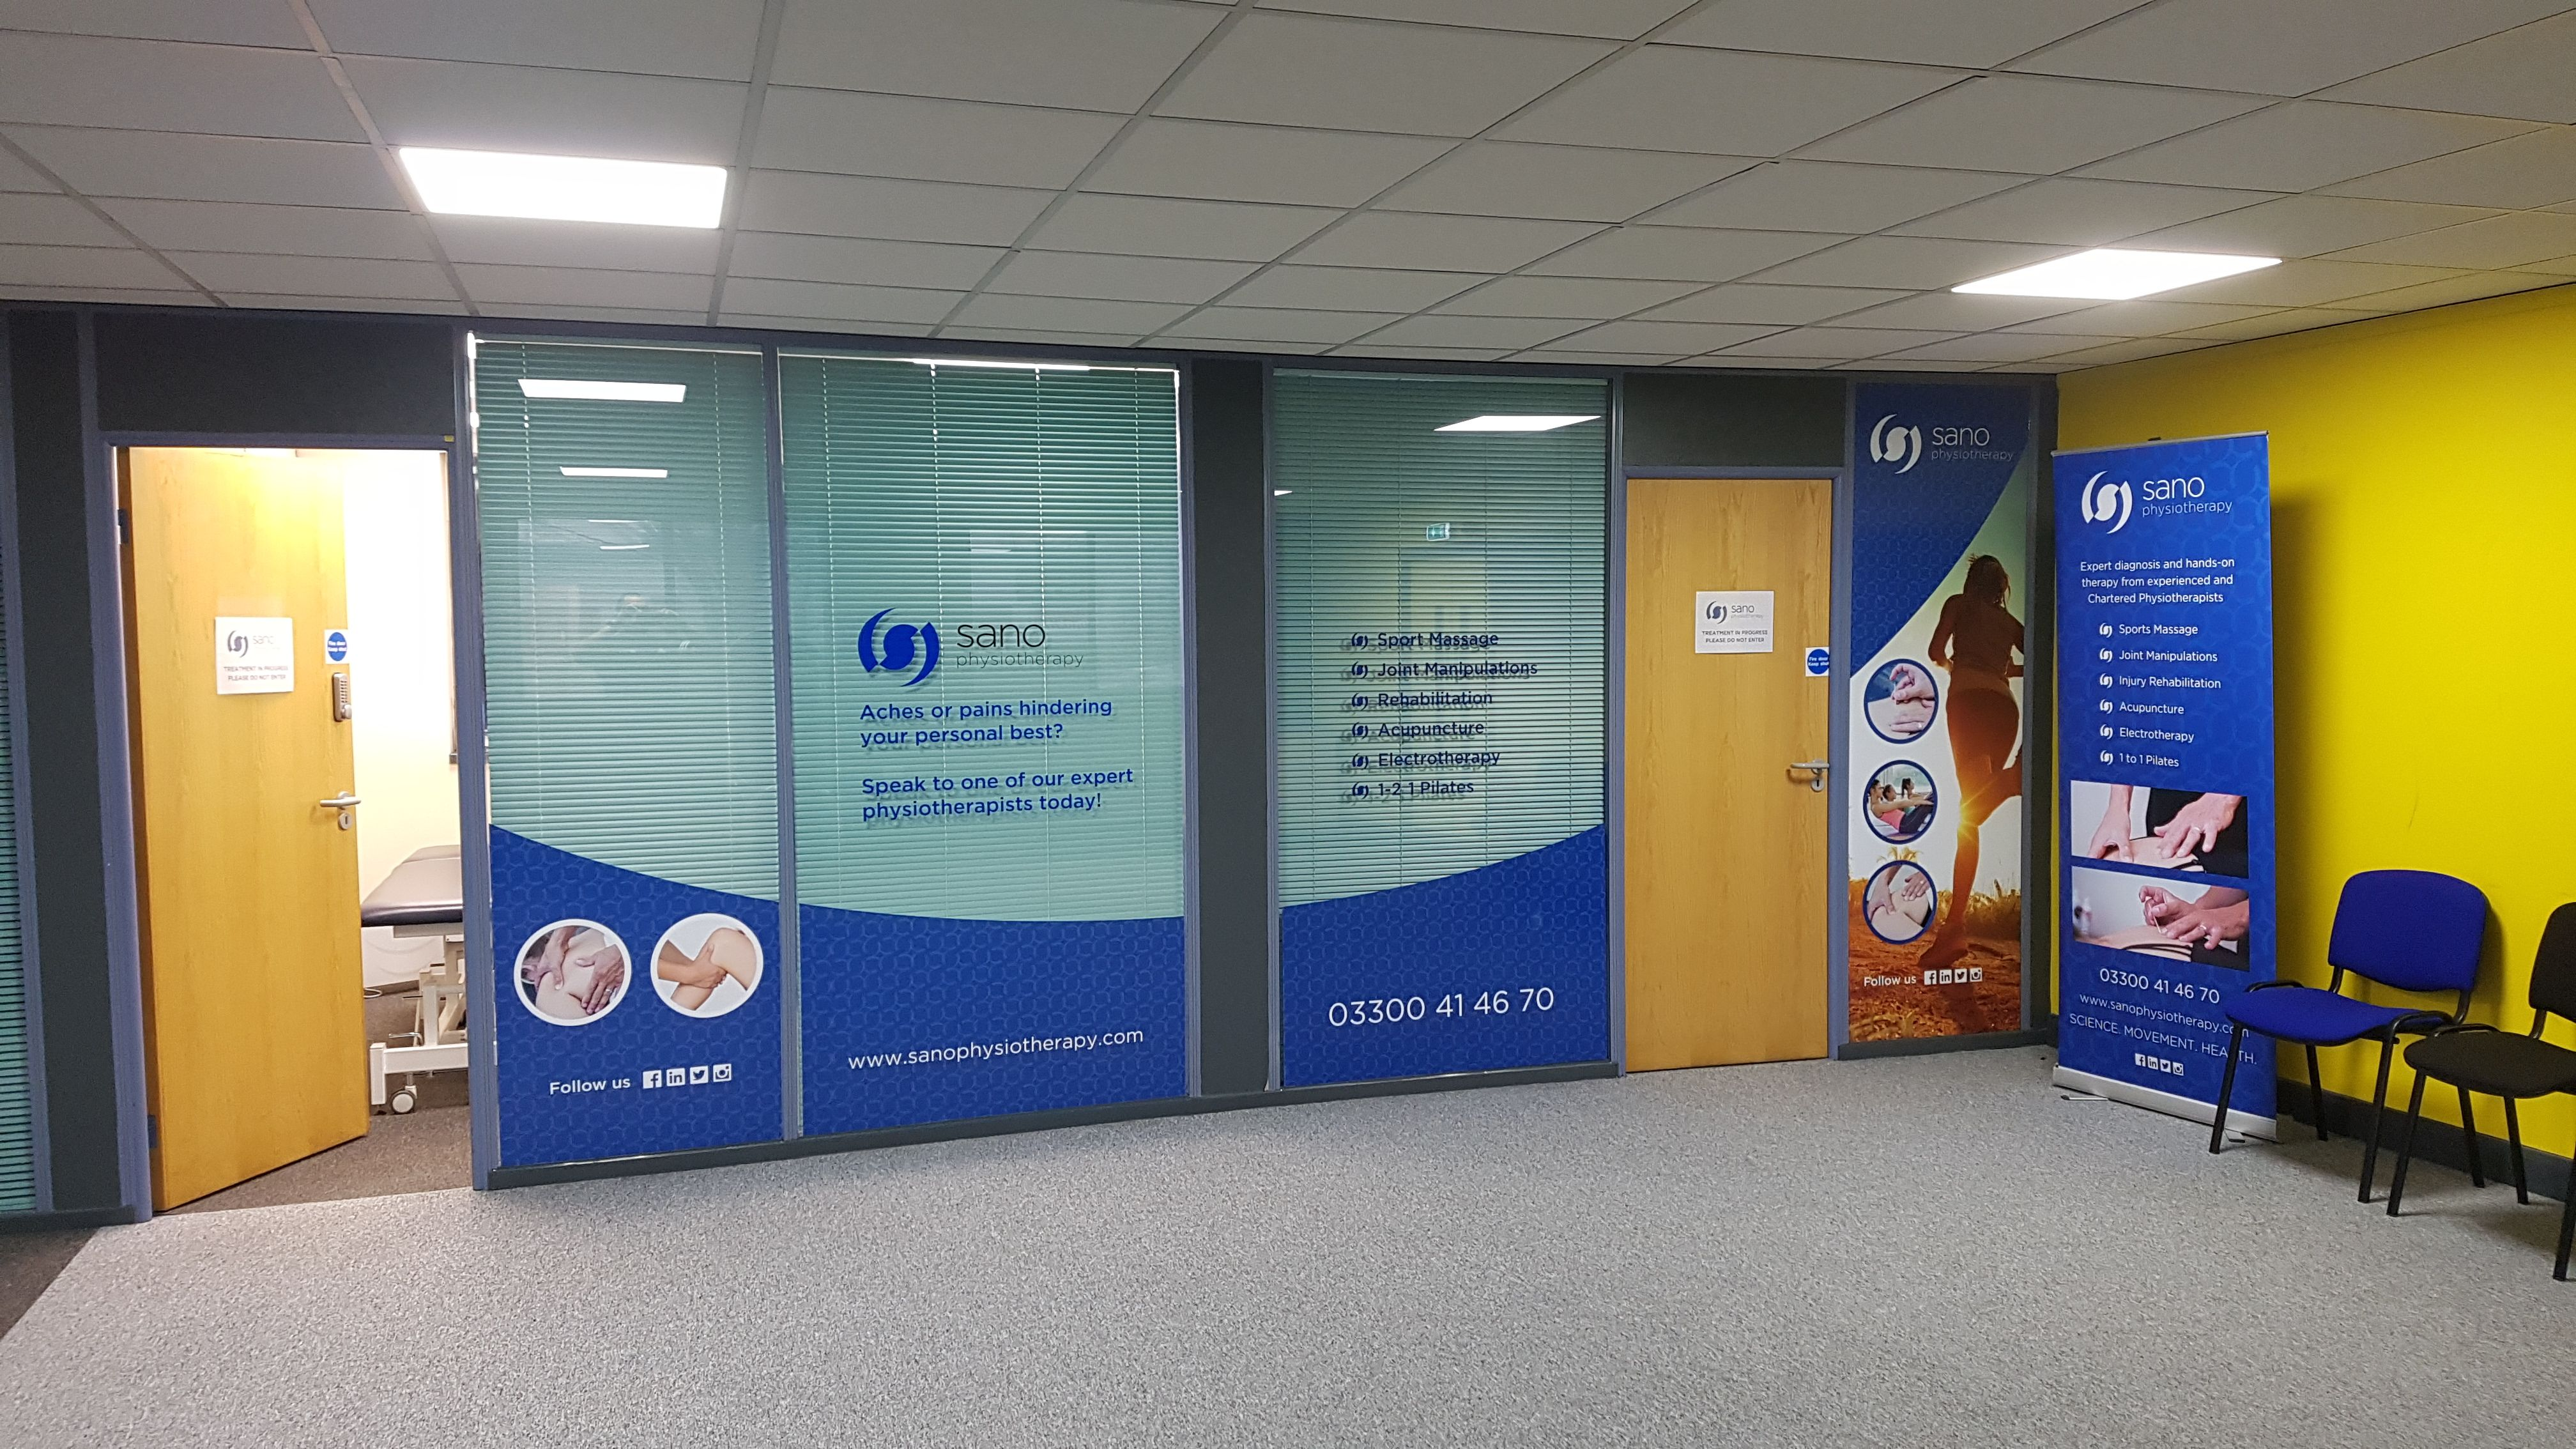 An image showing the signage for Sano Physiotherapy Smethwick located in Xercise4Less Smethwick